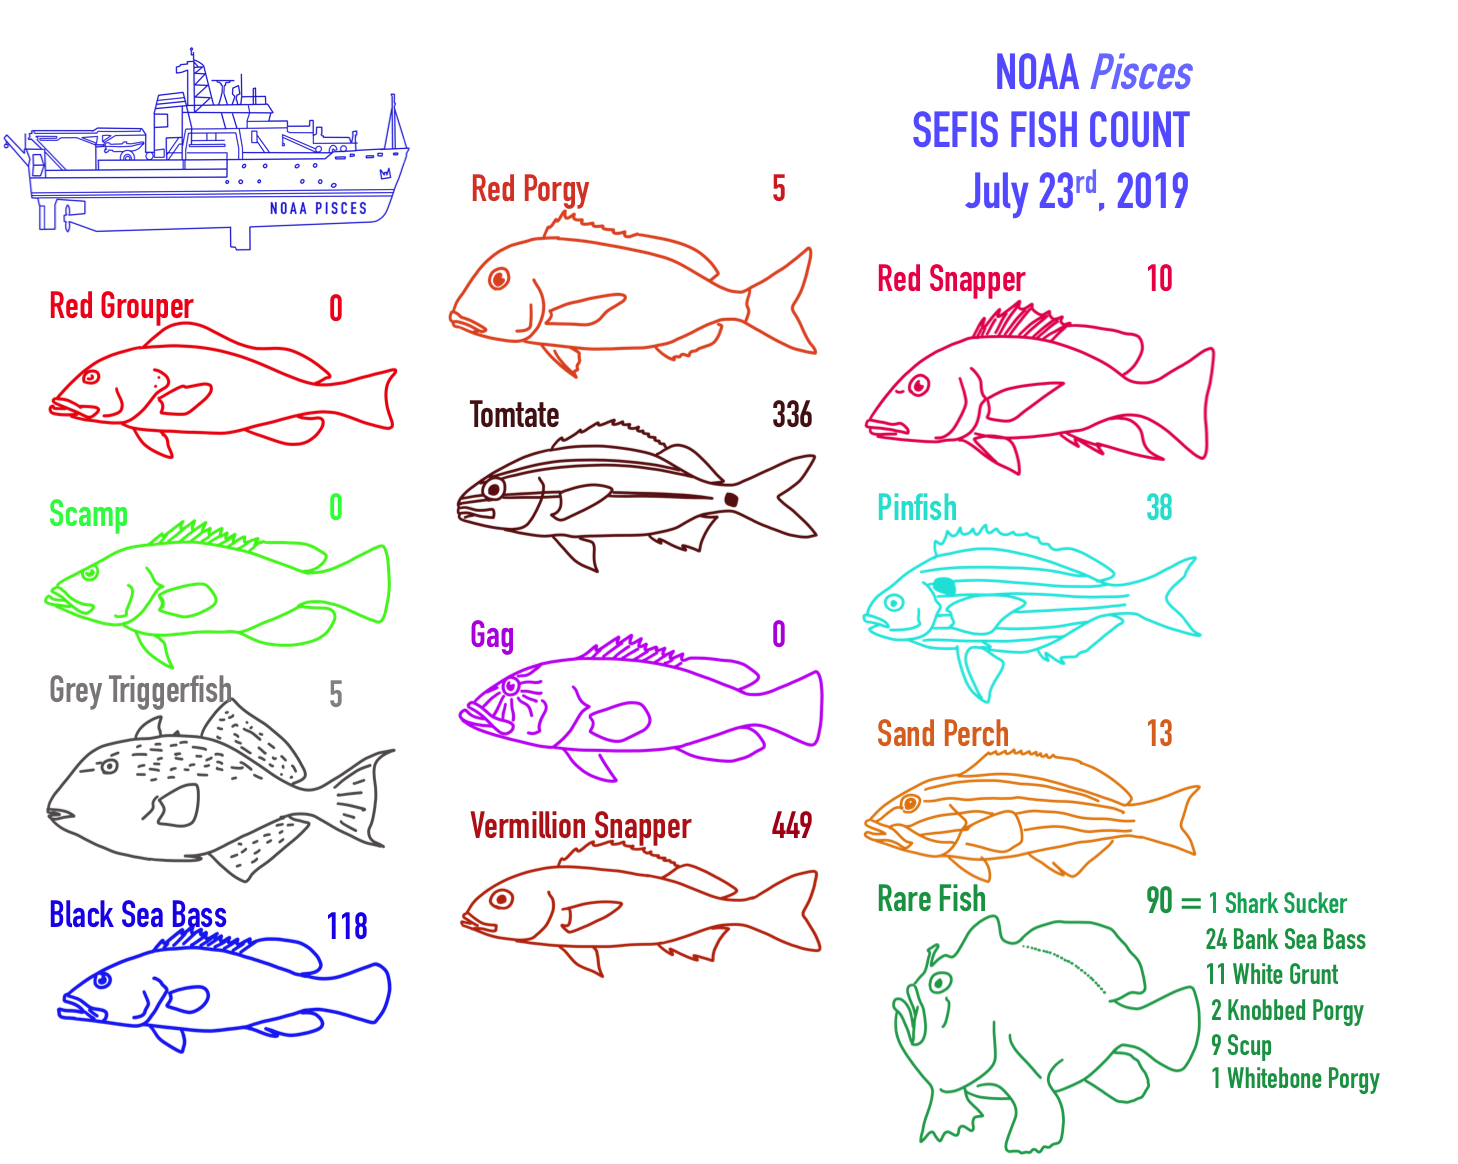 Fish Count for July 23, 2019